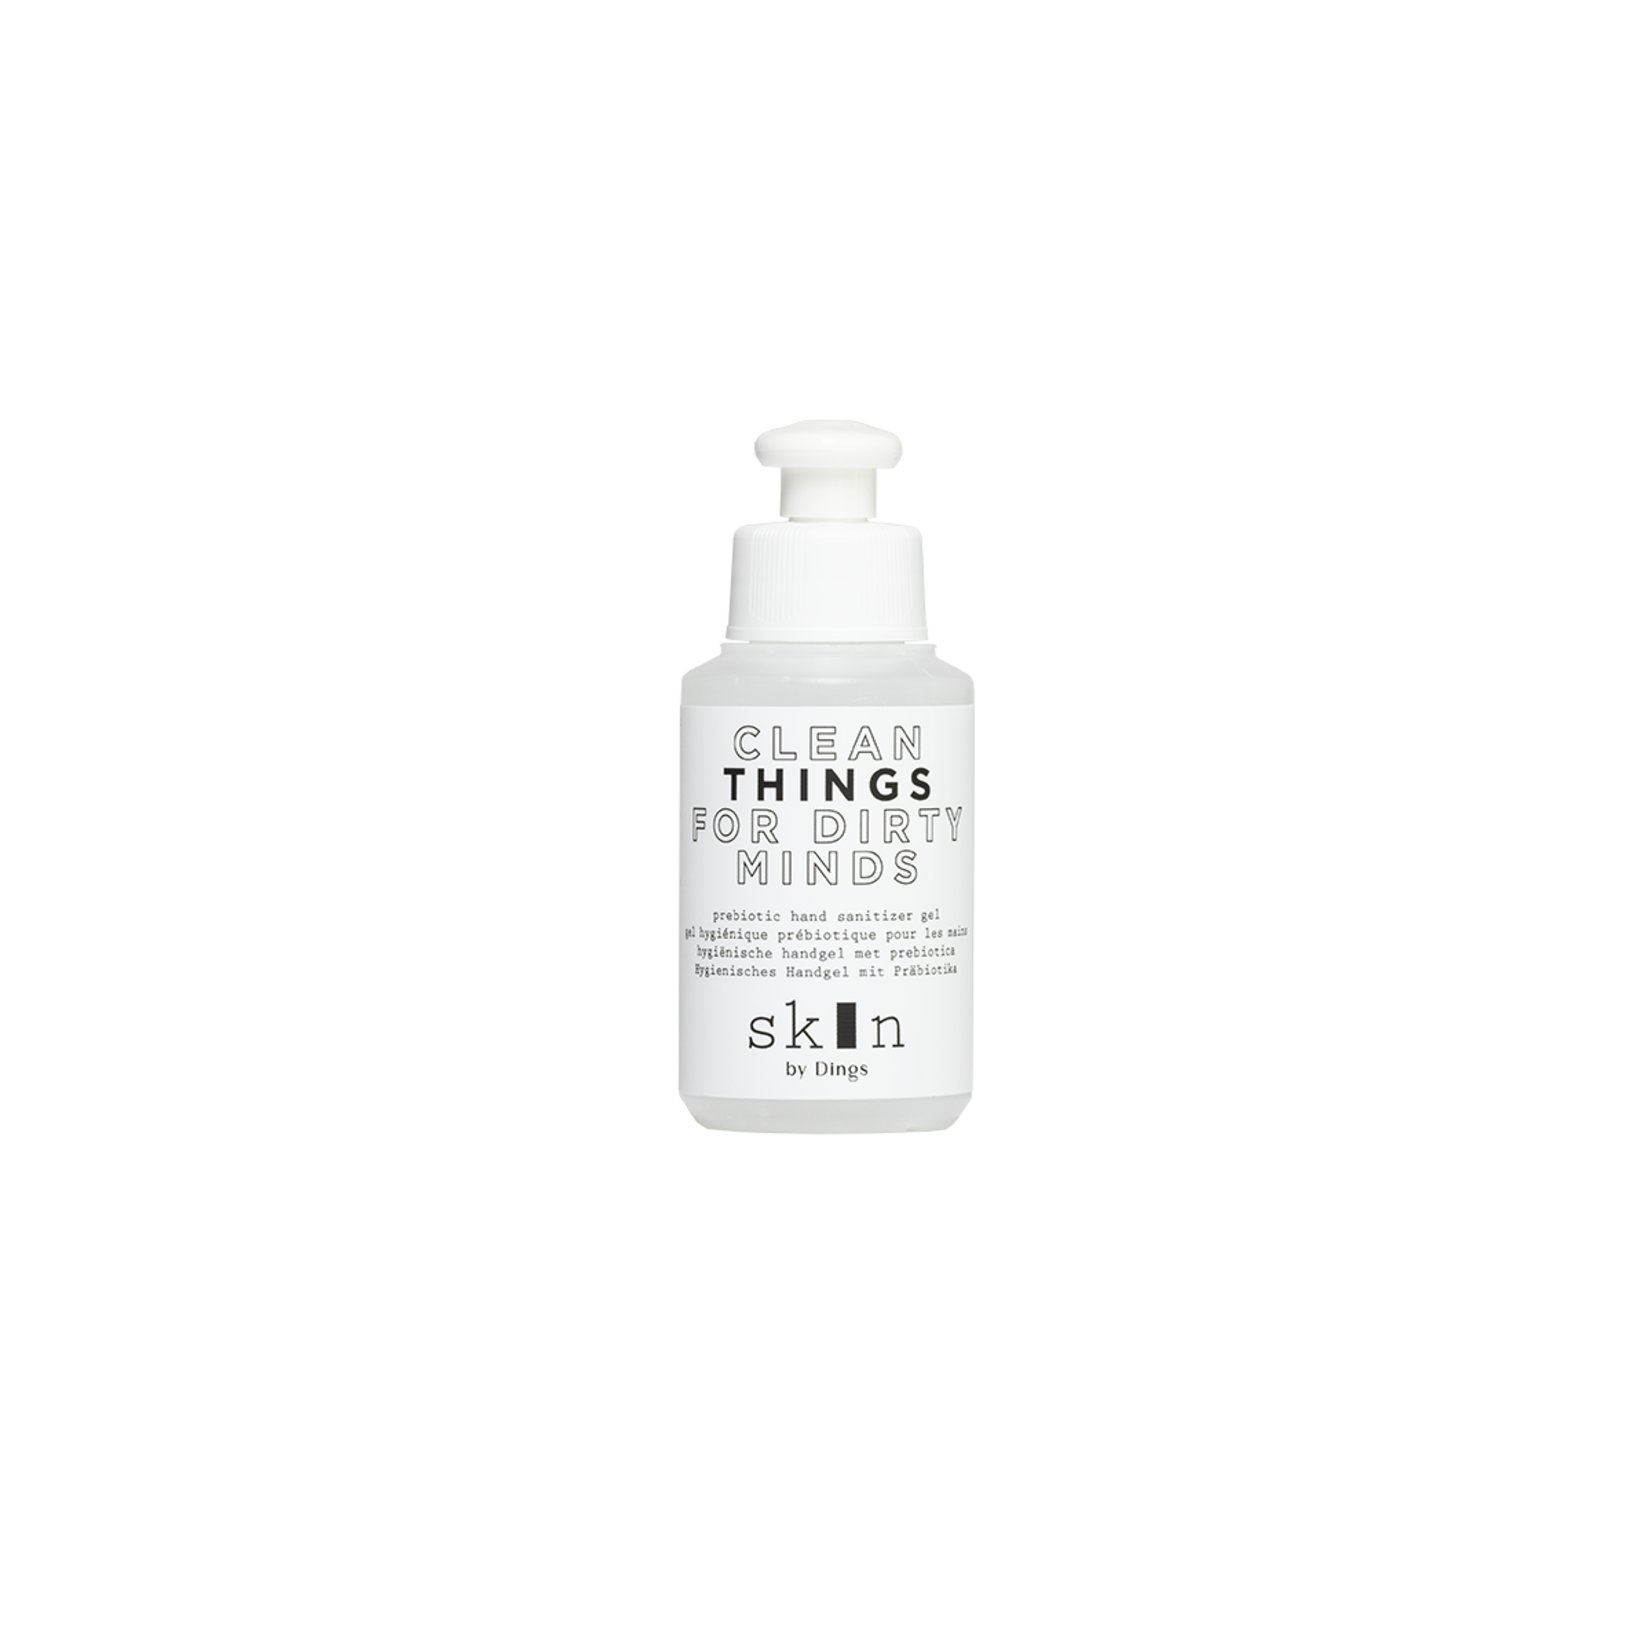 Skin by Dings Clean things for dirty minds